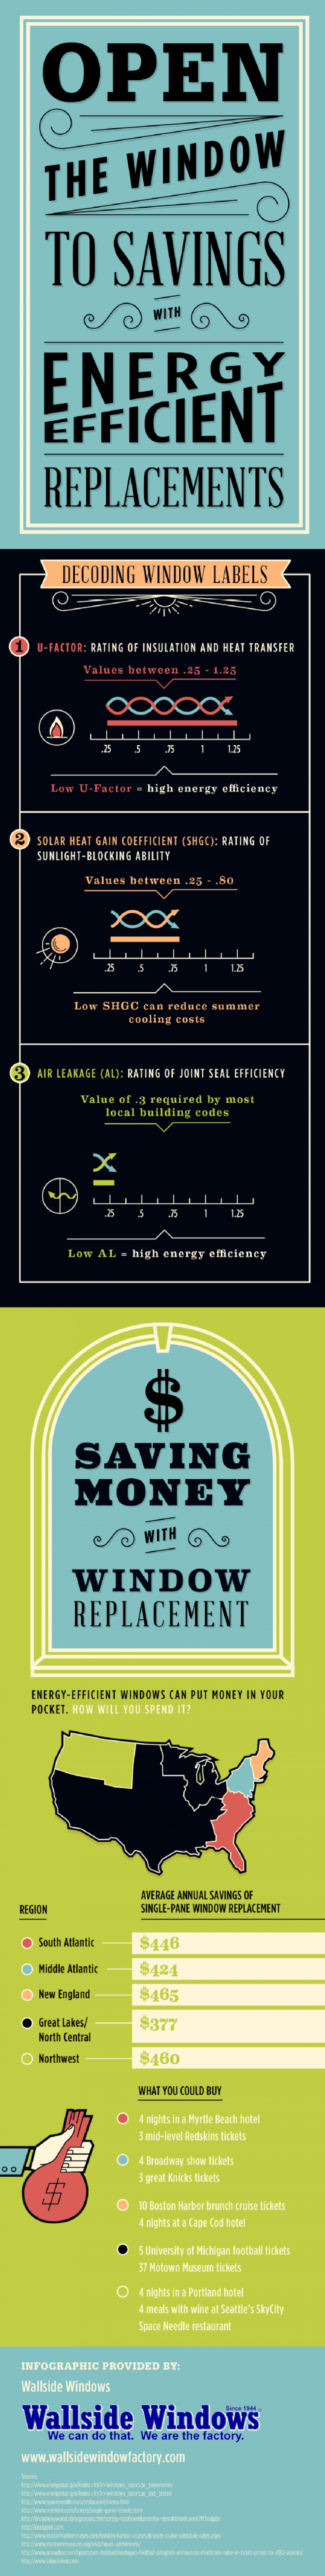 Open the Window to Savings with Energy-Efficient Replacements  Infographic